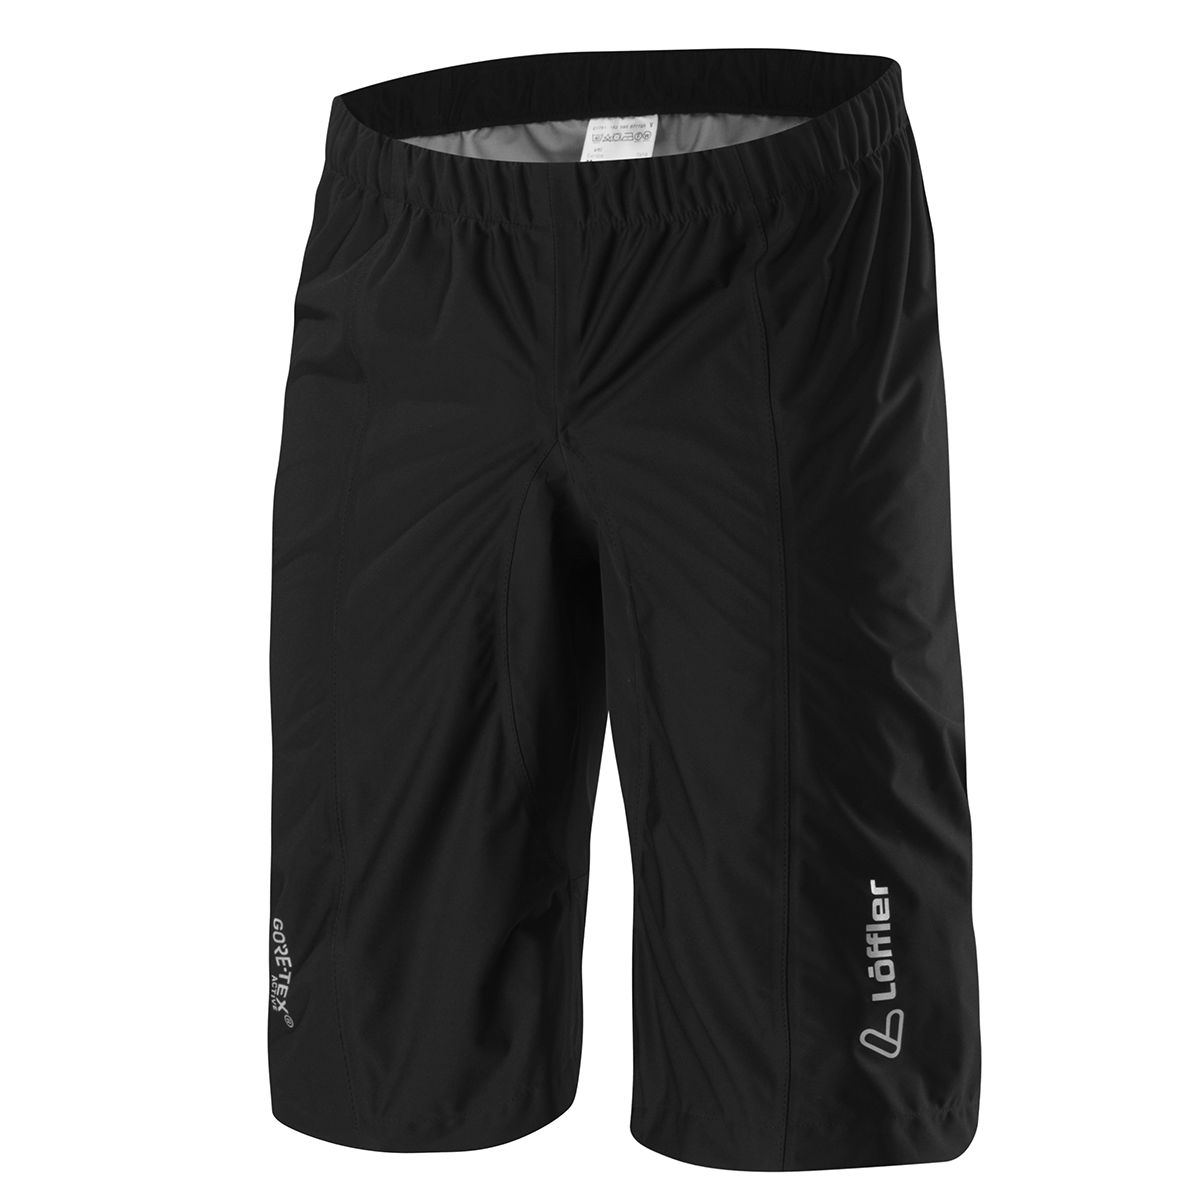 GTX ACTIVE UNISEX waterproof shorts